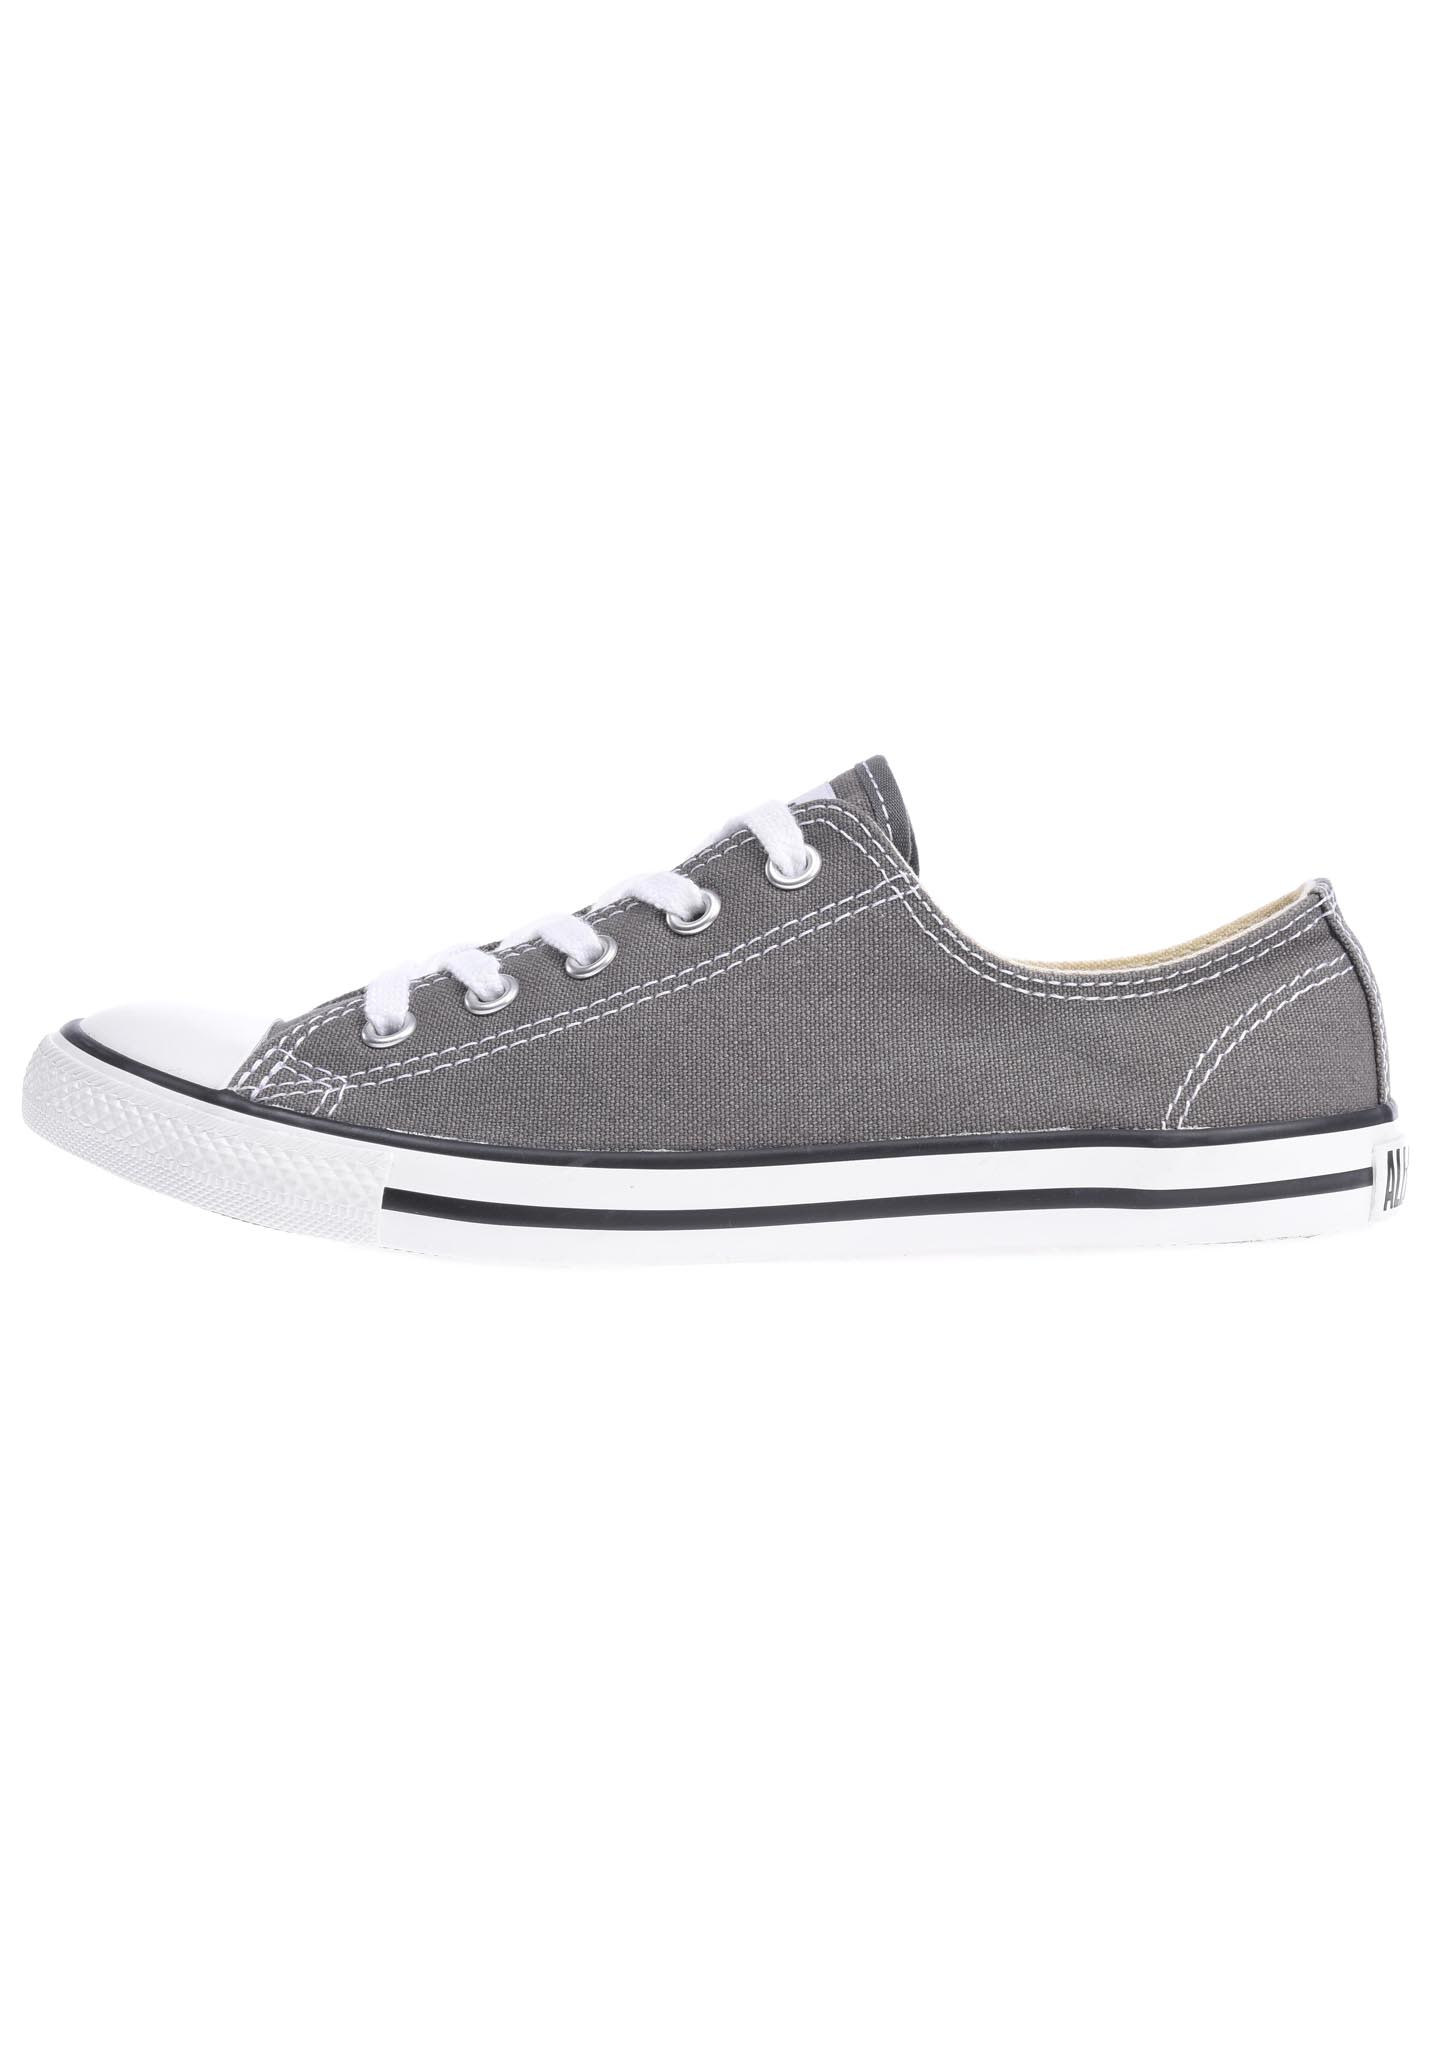 converse chuck taylor all star dainty ox (womens)